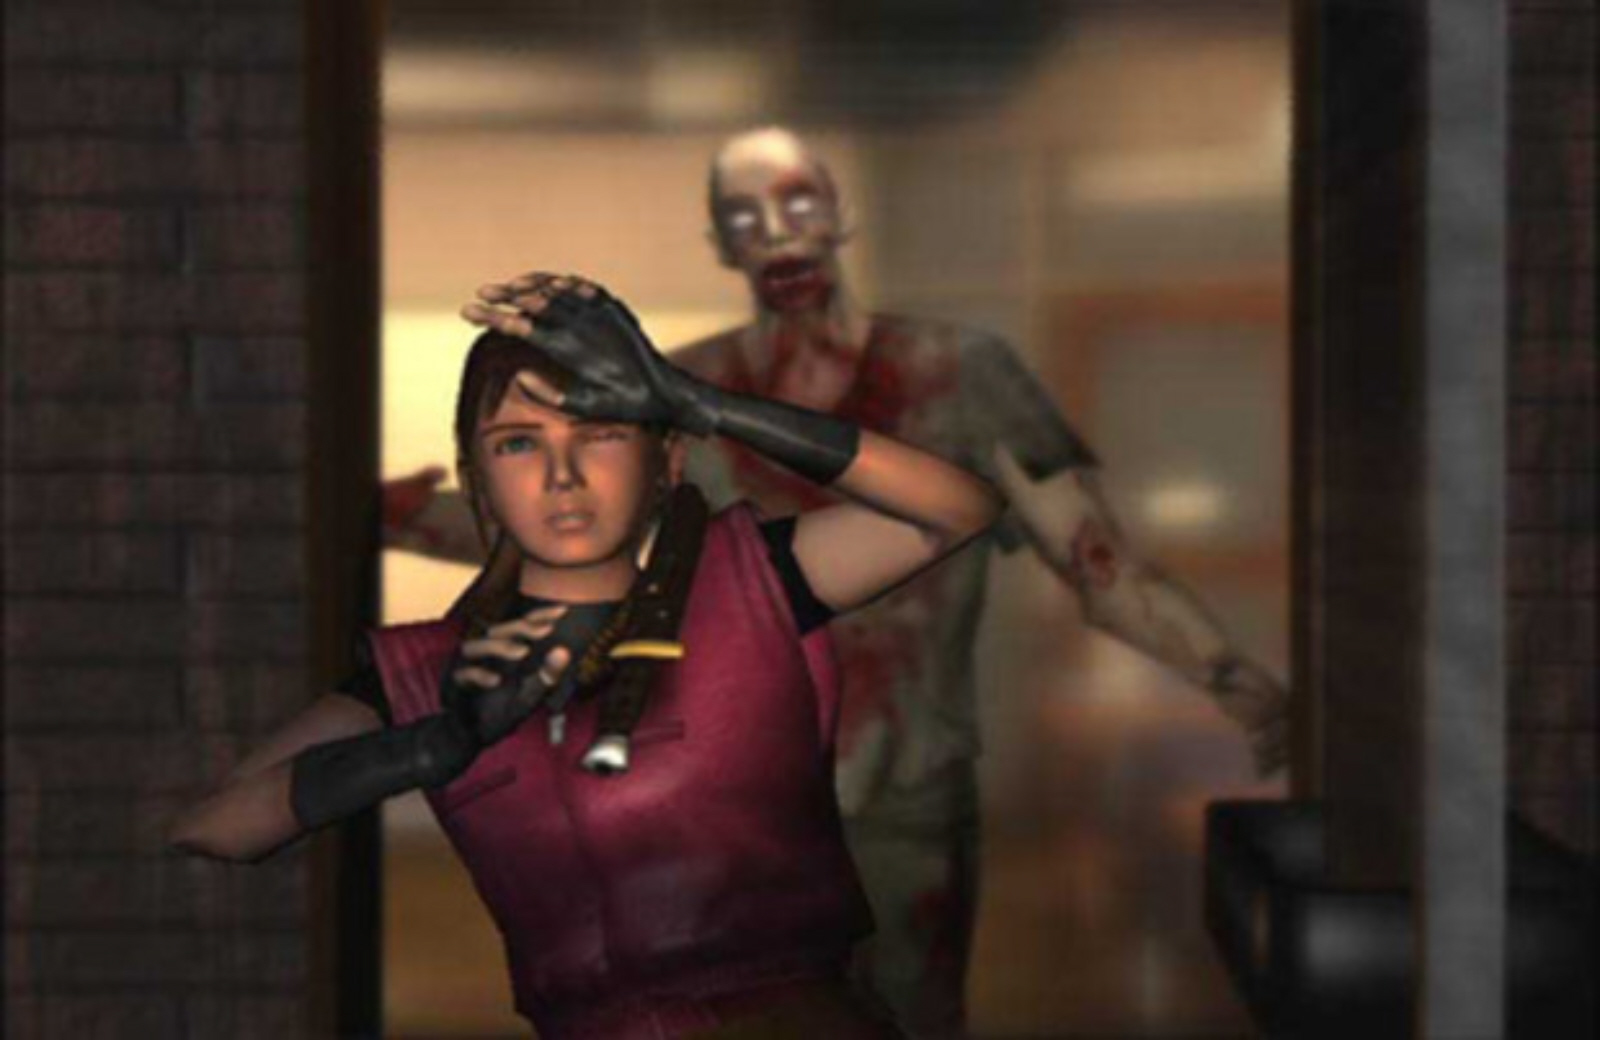 NYCC 2014: Resident Evil Revelations 2 gets PlayStation exclusive Raid Mode content